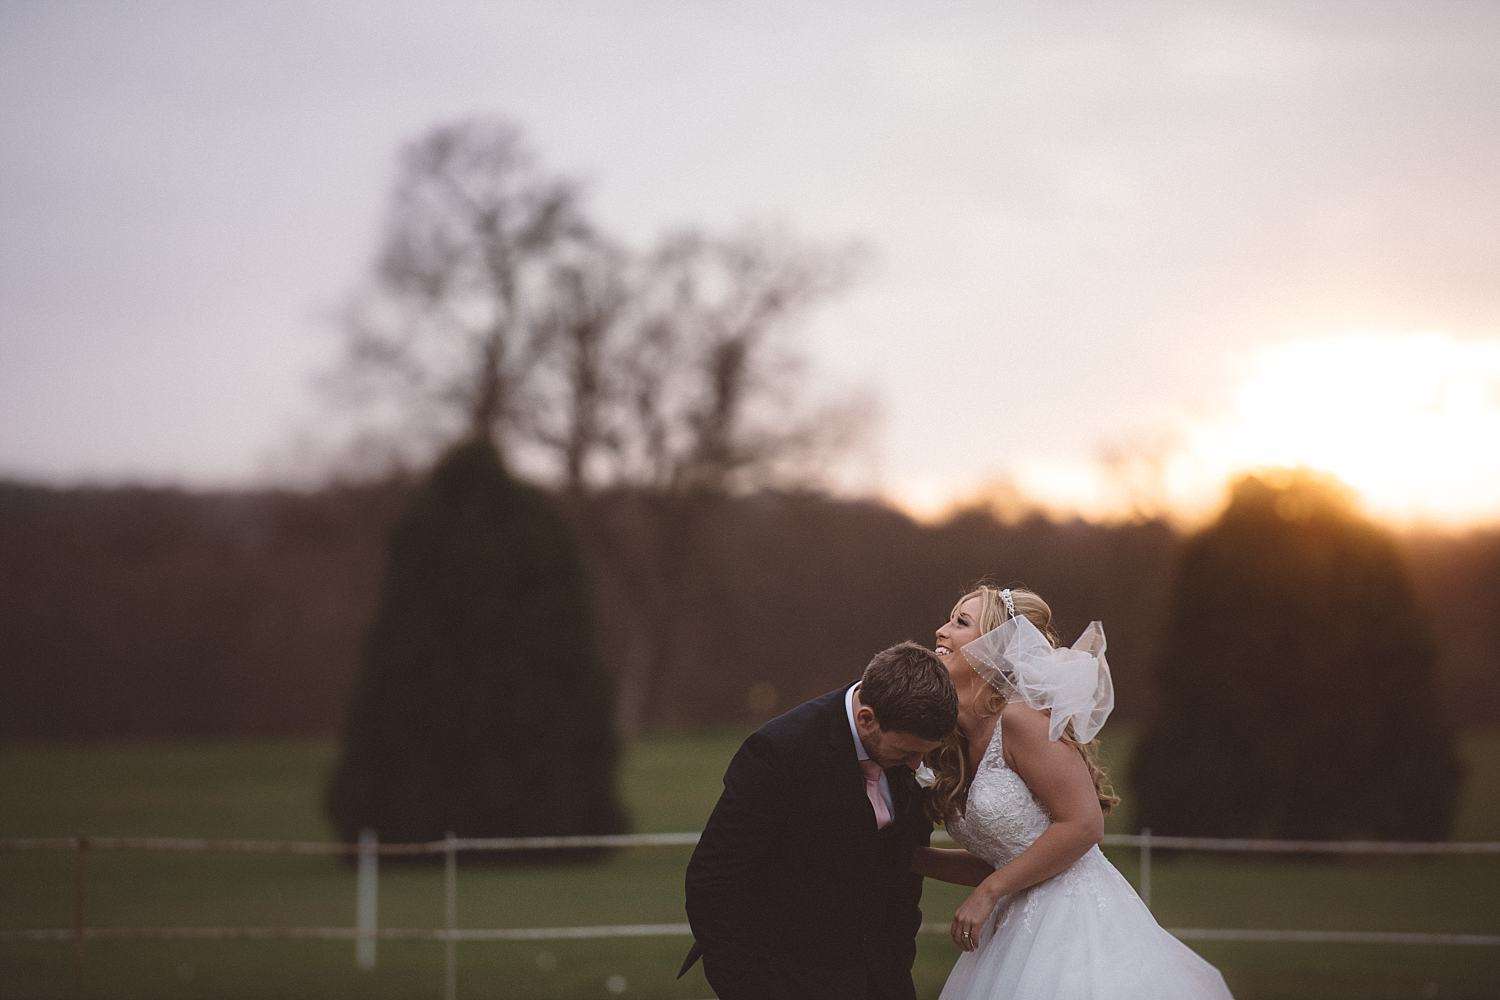 Golden hour wedding photography at Gosfield Hall